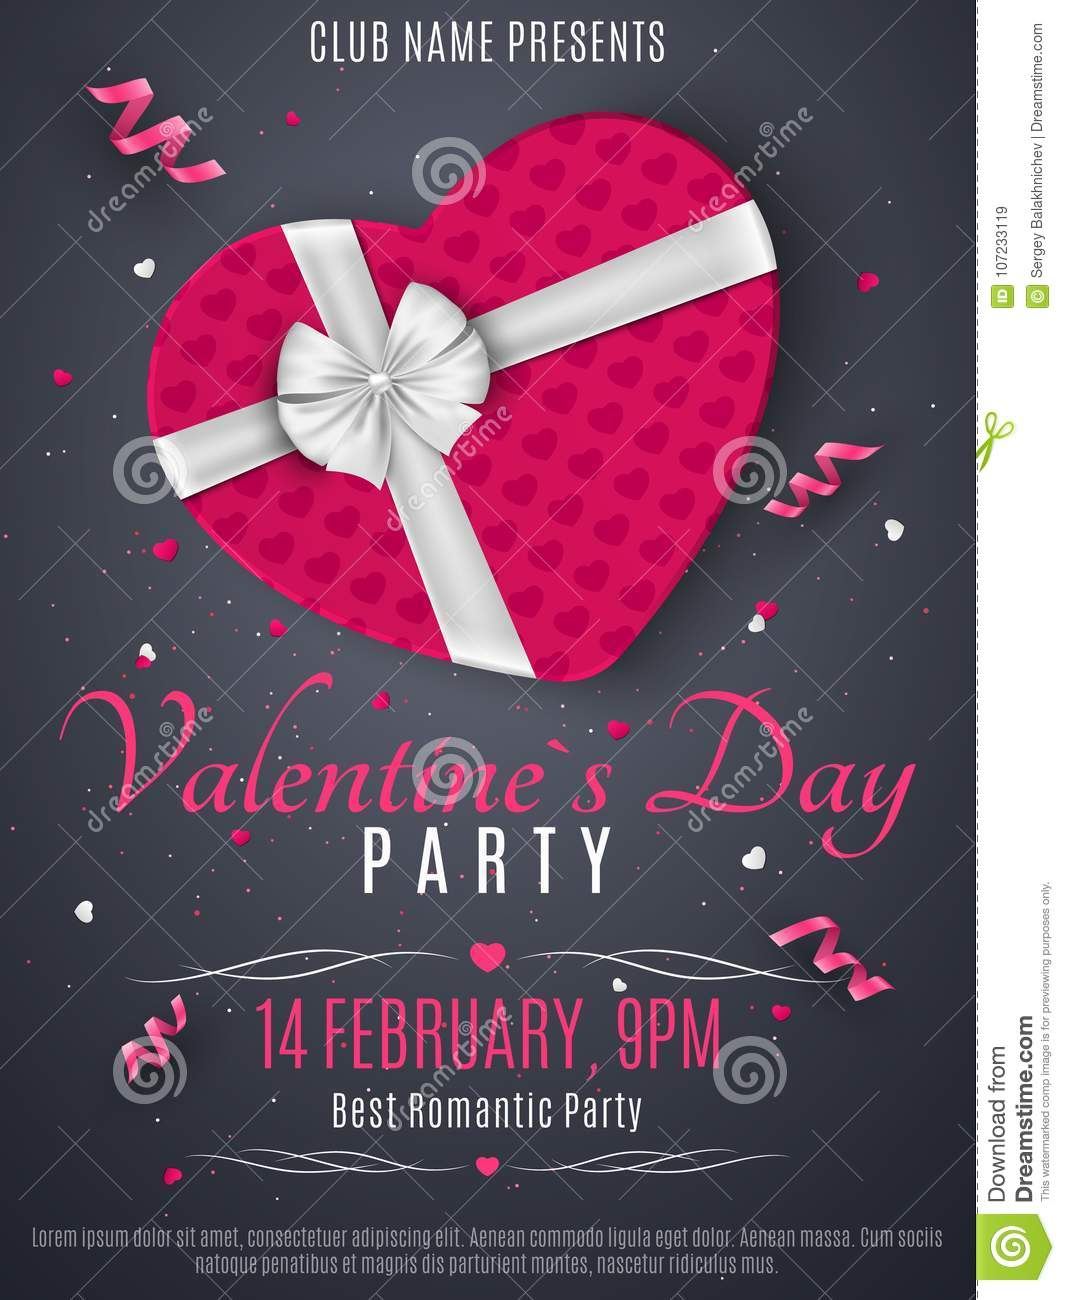 Valentines Day Party Flyer Purple Box From The Heart And A White